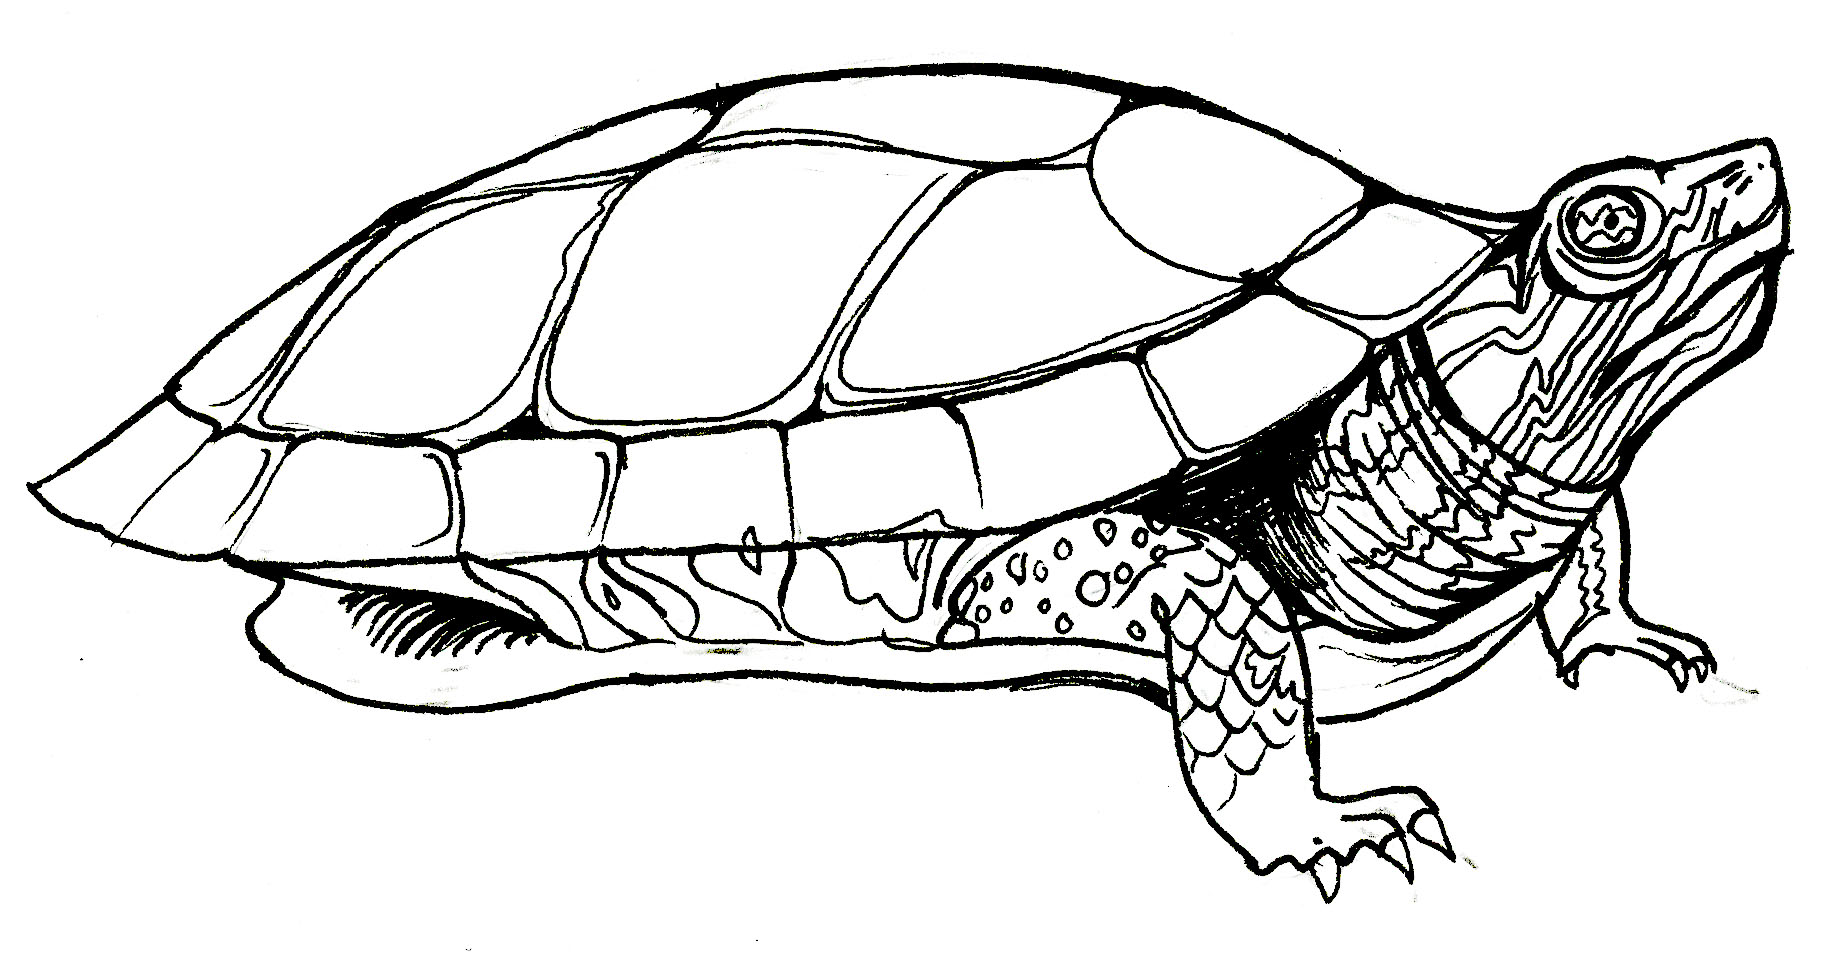 Eastern Painted Turtle Illustration and Design